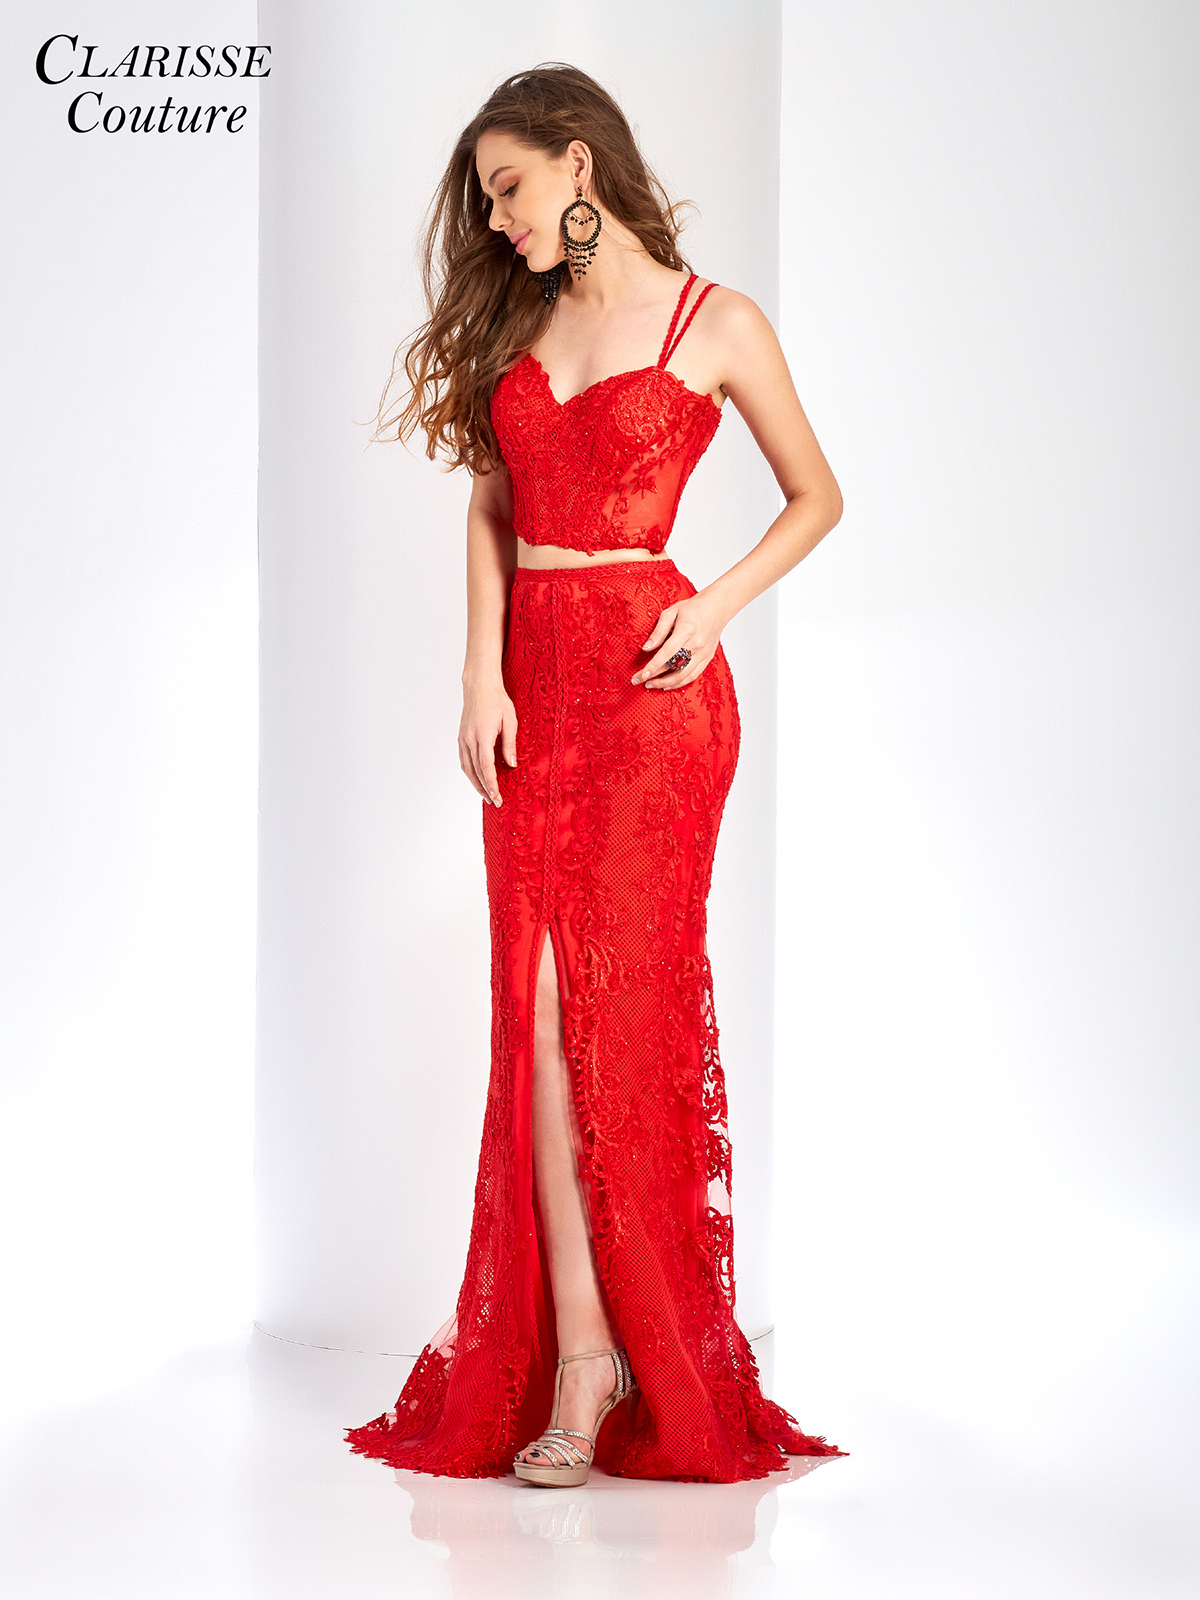 2018 Prom Dress Clarisse 4948 | Promgirl.net